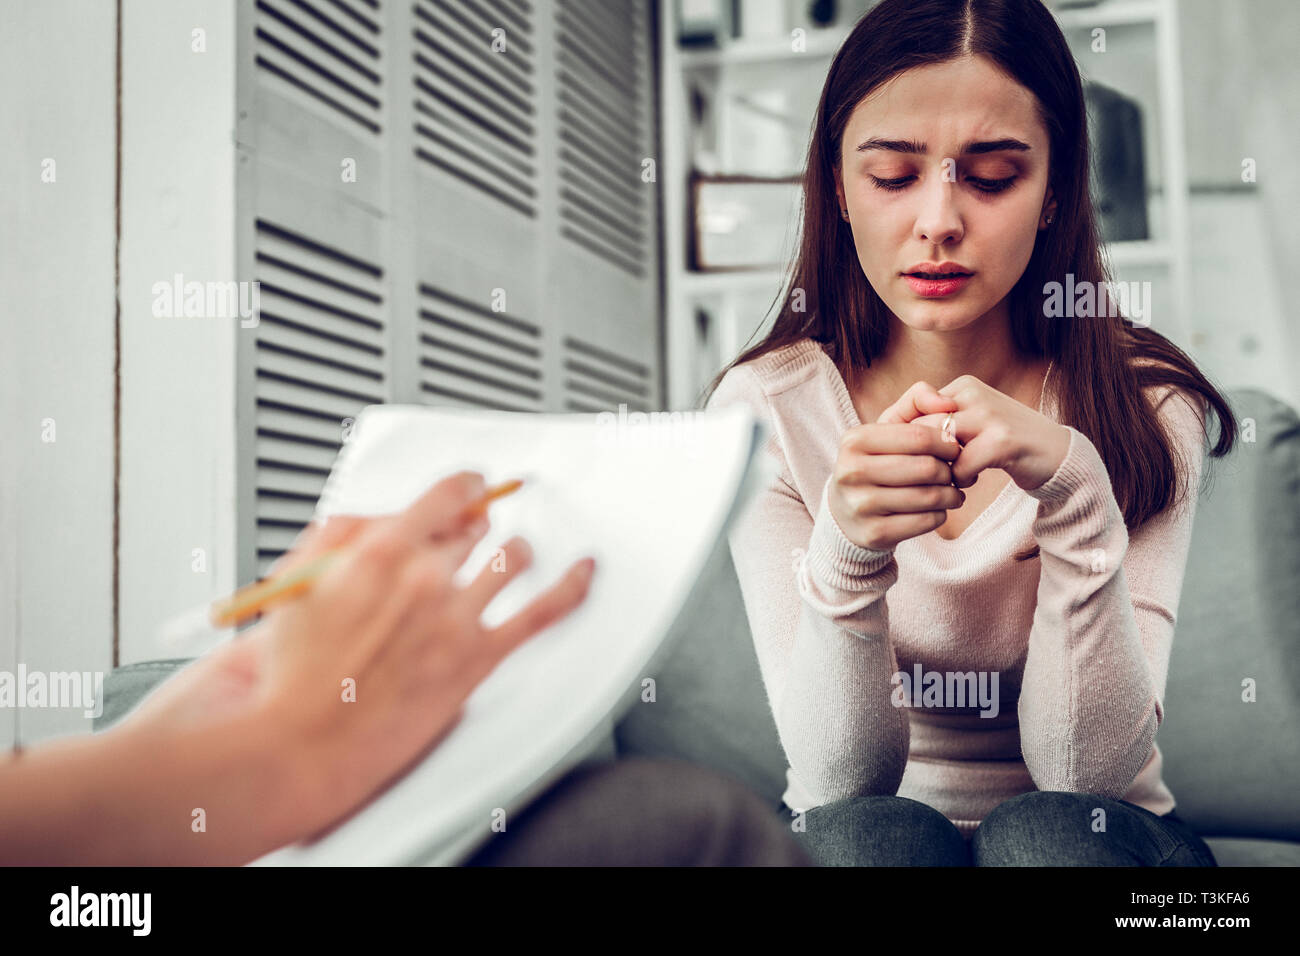 Young woman feeling stressed sharing personal feelings with therapist - Stock Image